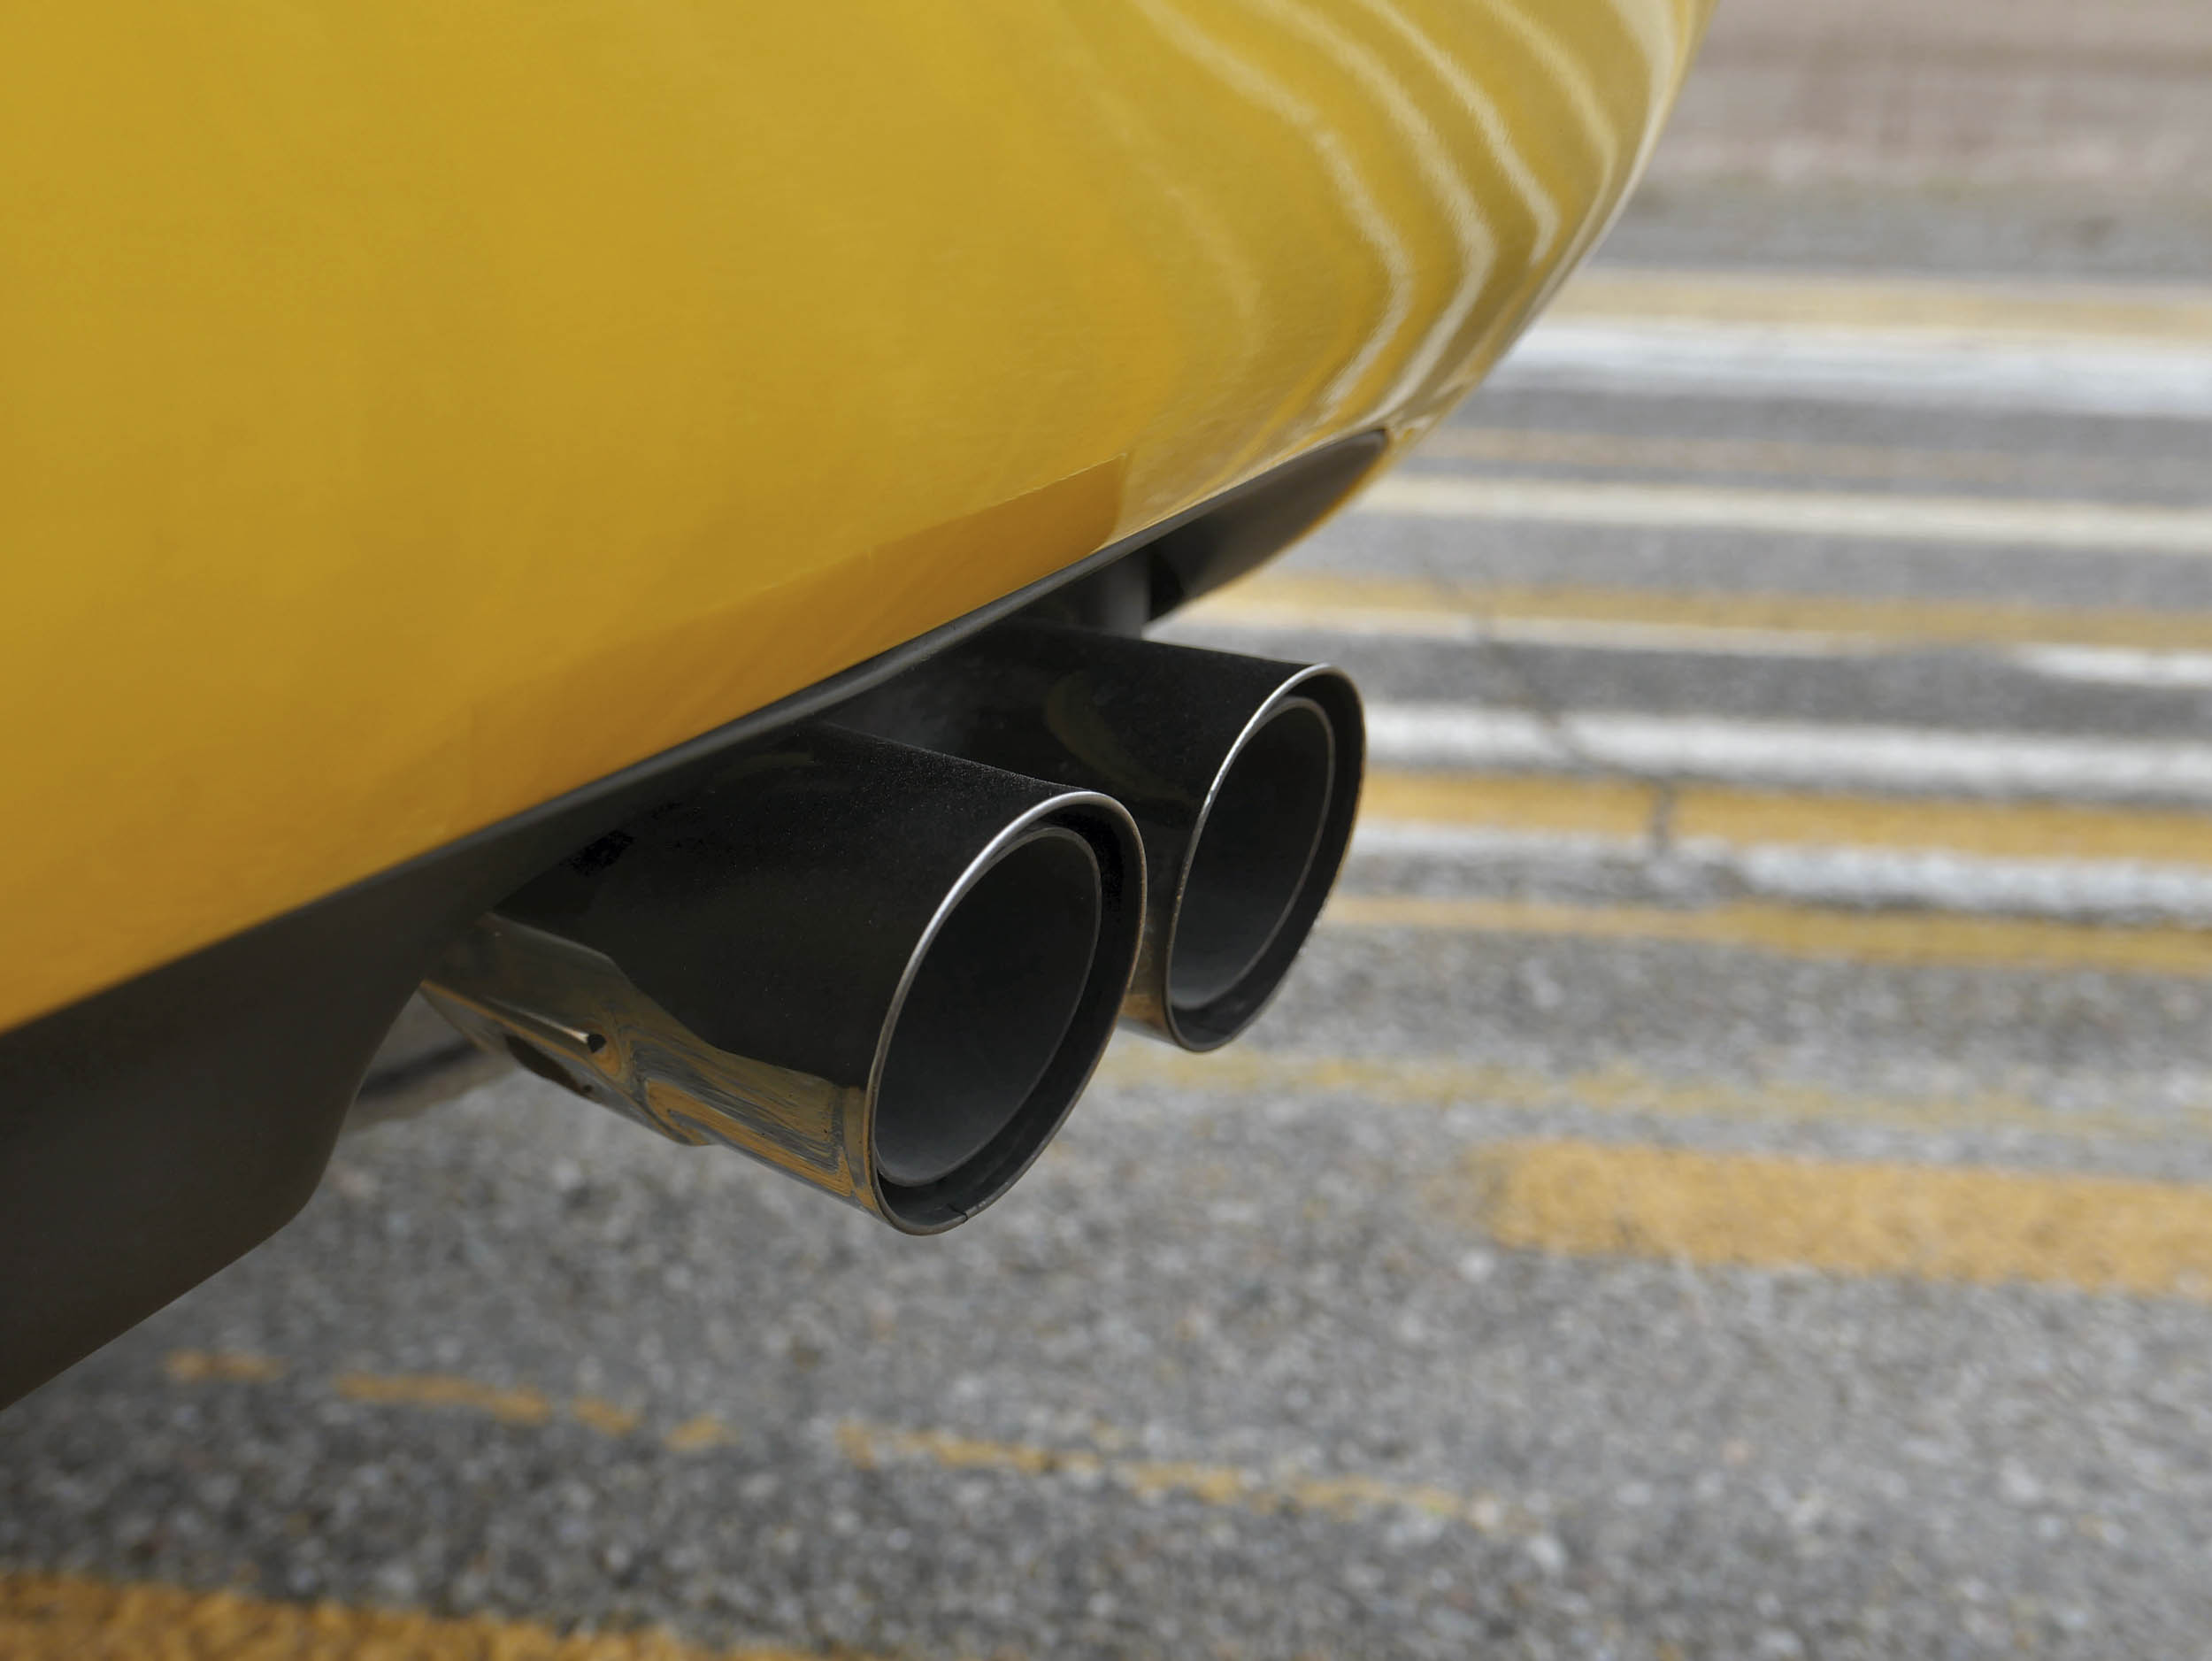 Mazda RX-7 tail pipes